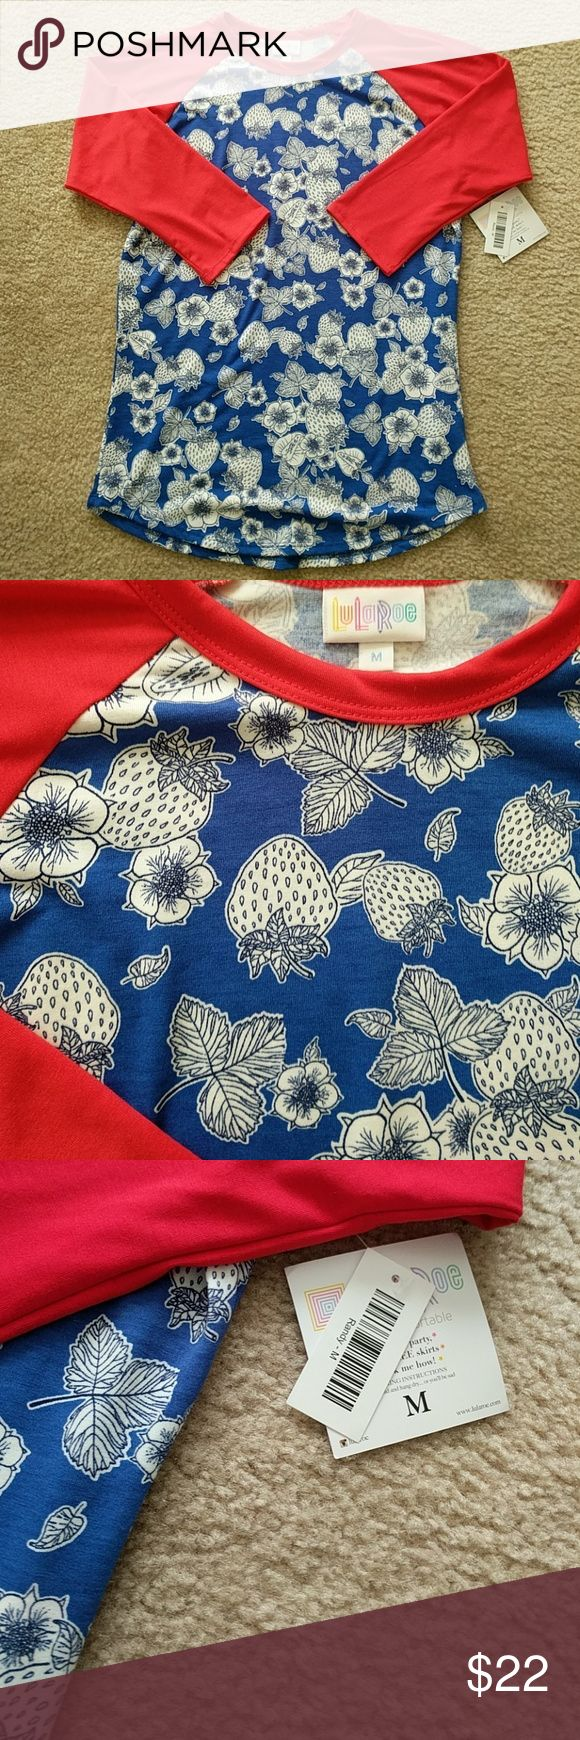 Lularoe Randy- red white & blue summery strawberry Lularoe Randy top size medium. Summery, with strawberry and flower pattern. Blue and white body with red collar and sleeves. Brand new with tags. LuLaRoe Tops Tees - Short Sleeve